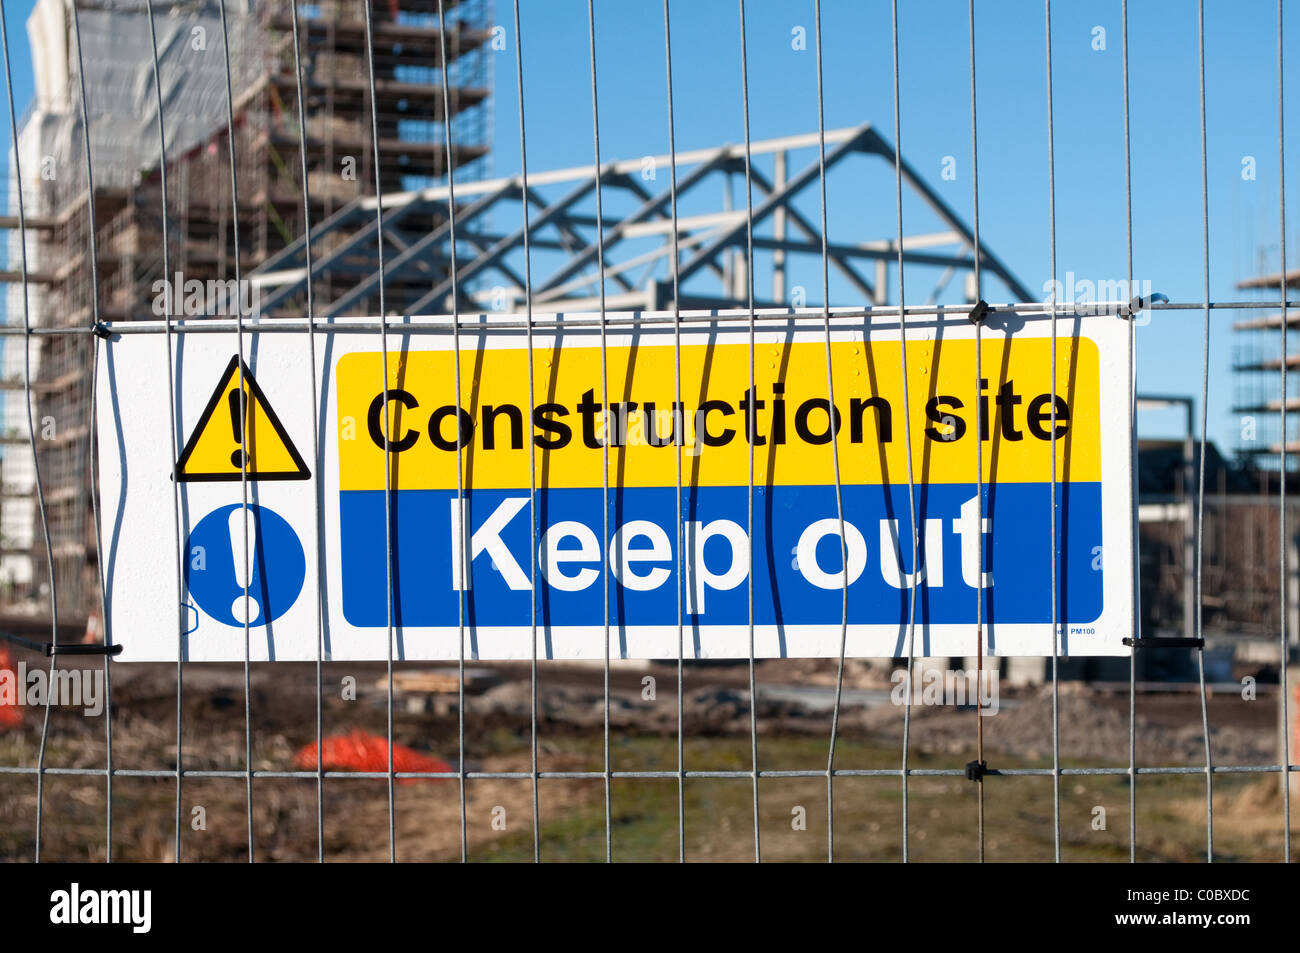 a keep out notice at a construction site in cornwall, uk - Stock Image